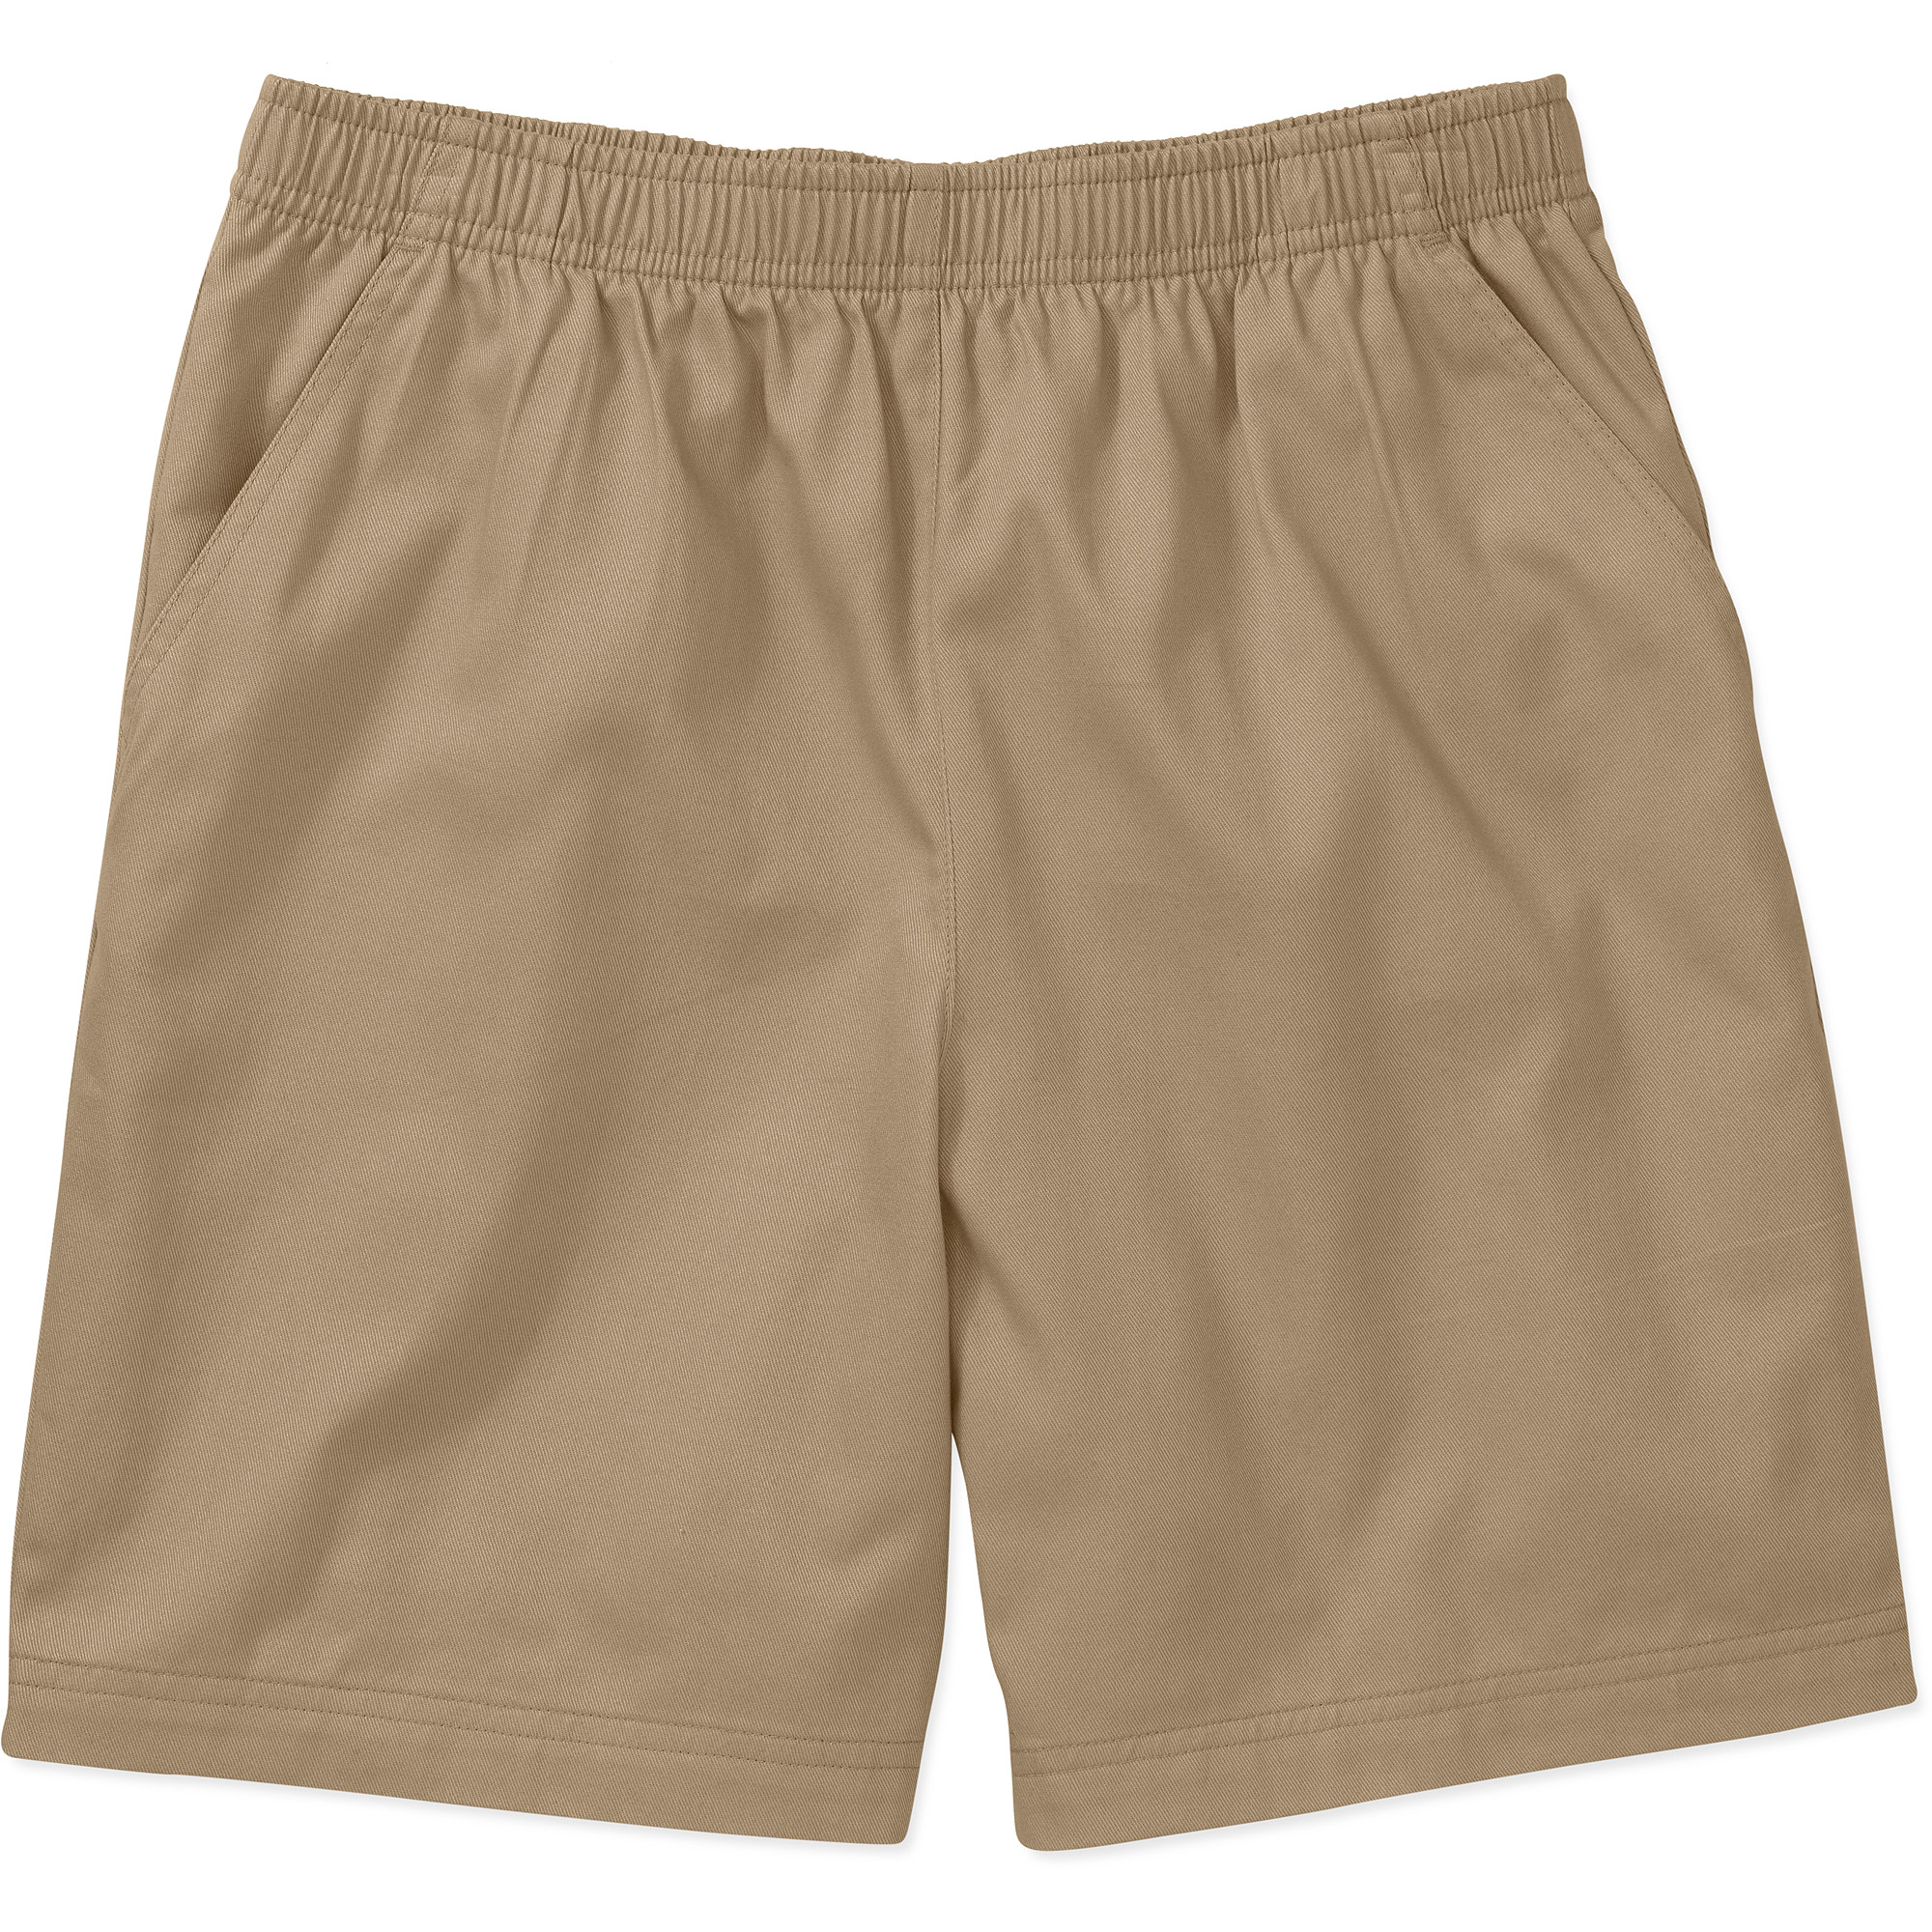 "White Stag Women's 7"" Woven Shorts"